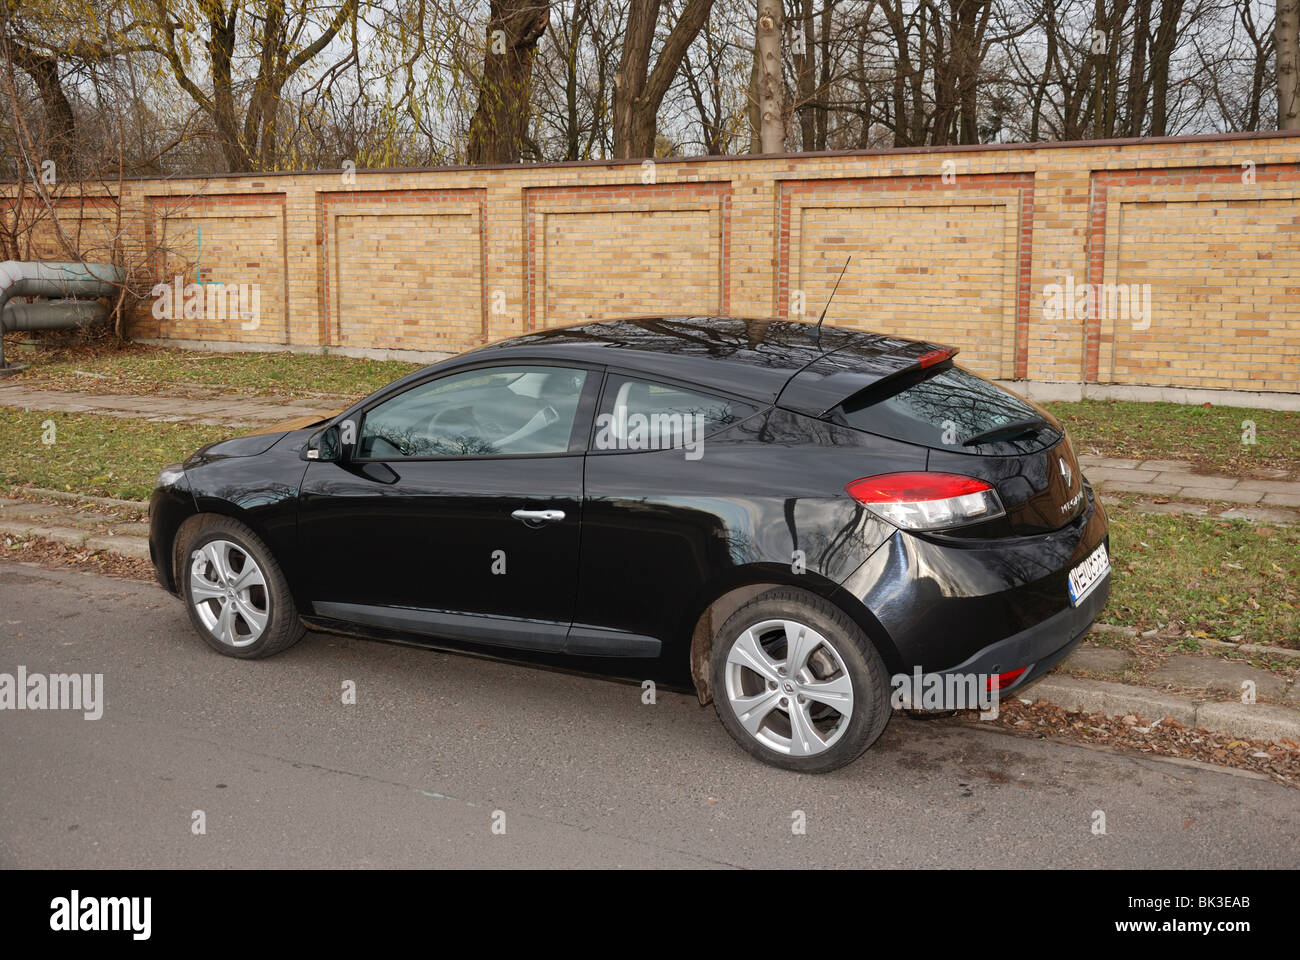 renault megane iii coupe 2 0 tce my 2009 black metallic two stock photo 28965955 alamy. Black Bedroom Furniture Sets. Home Design Ideas